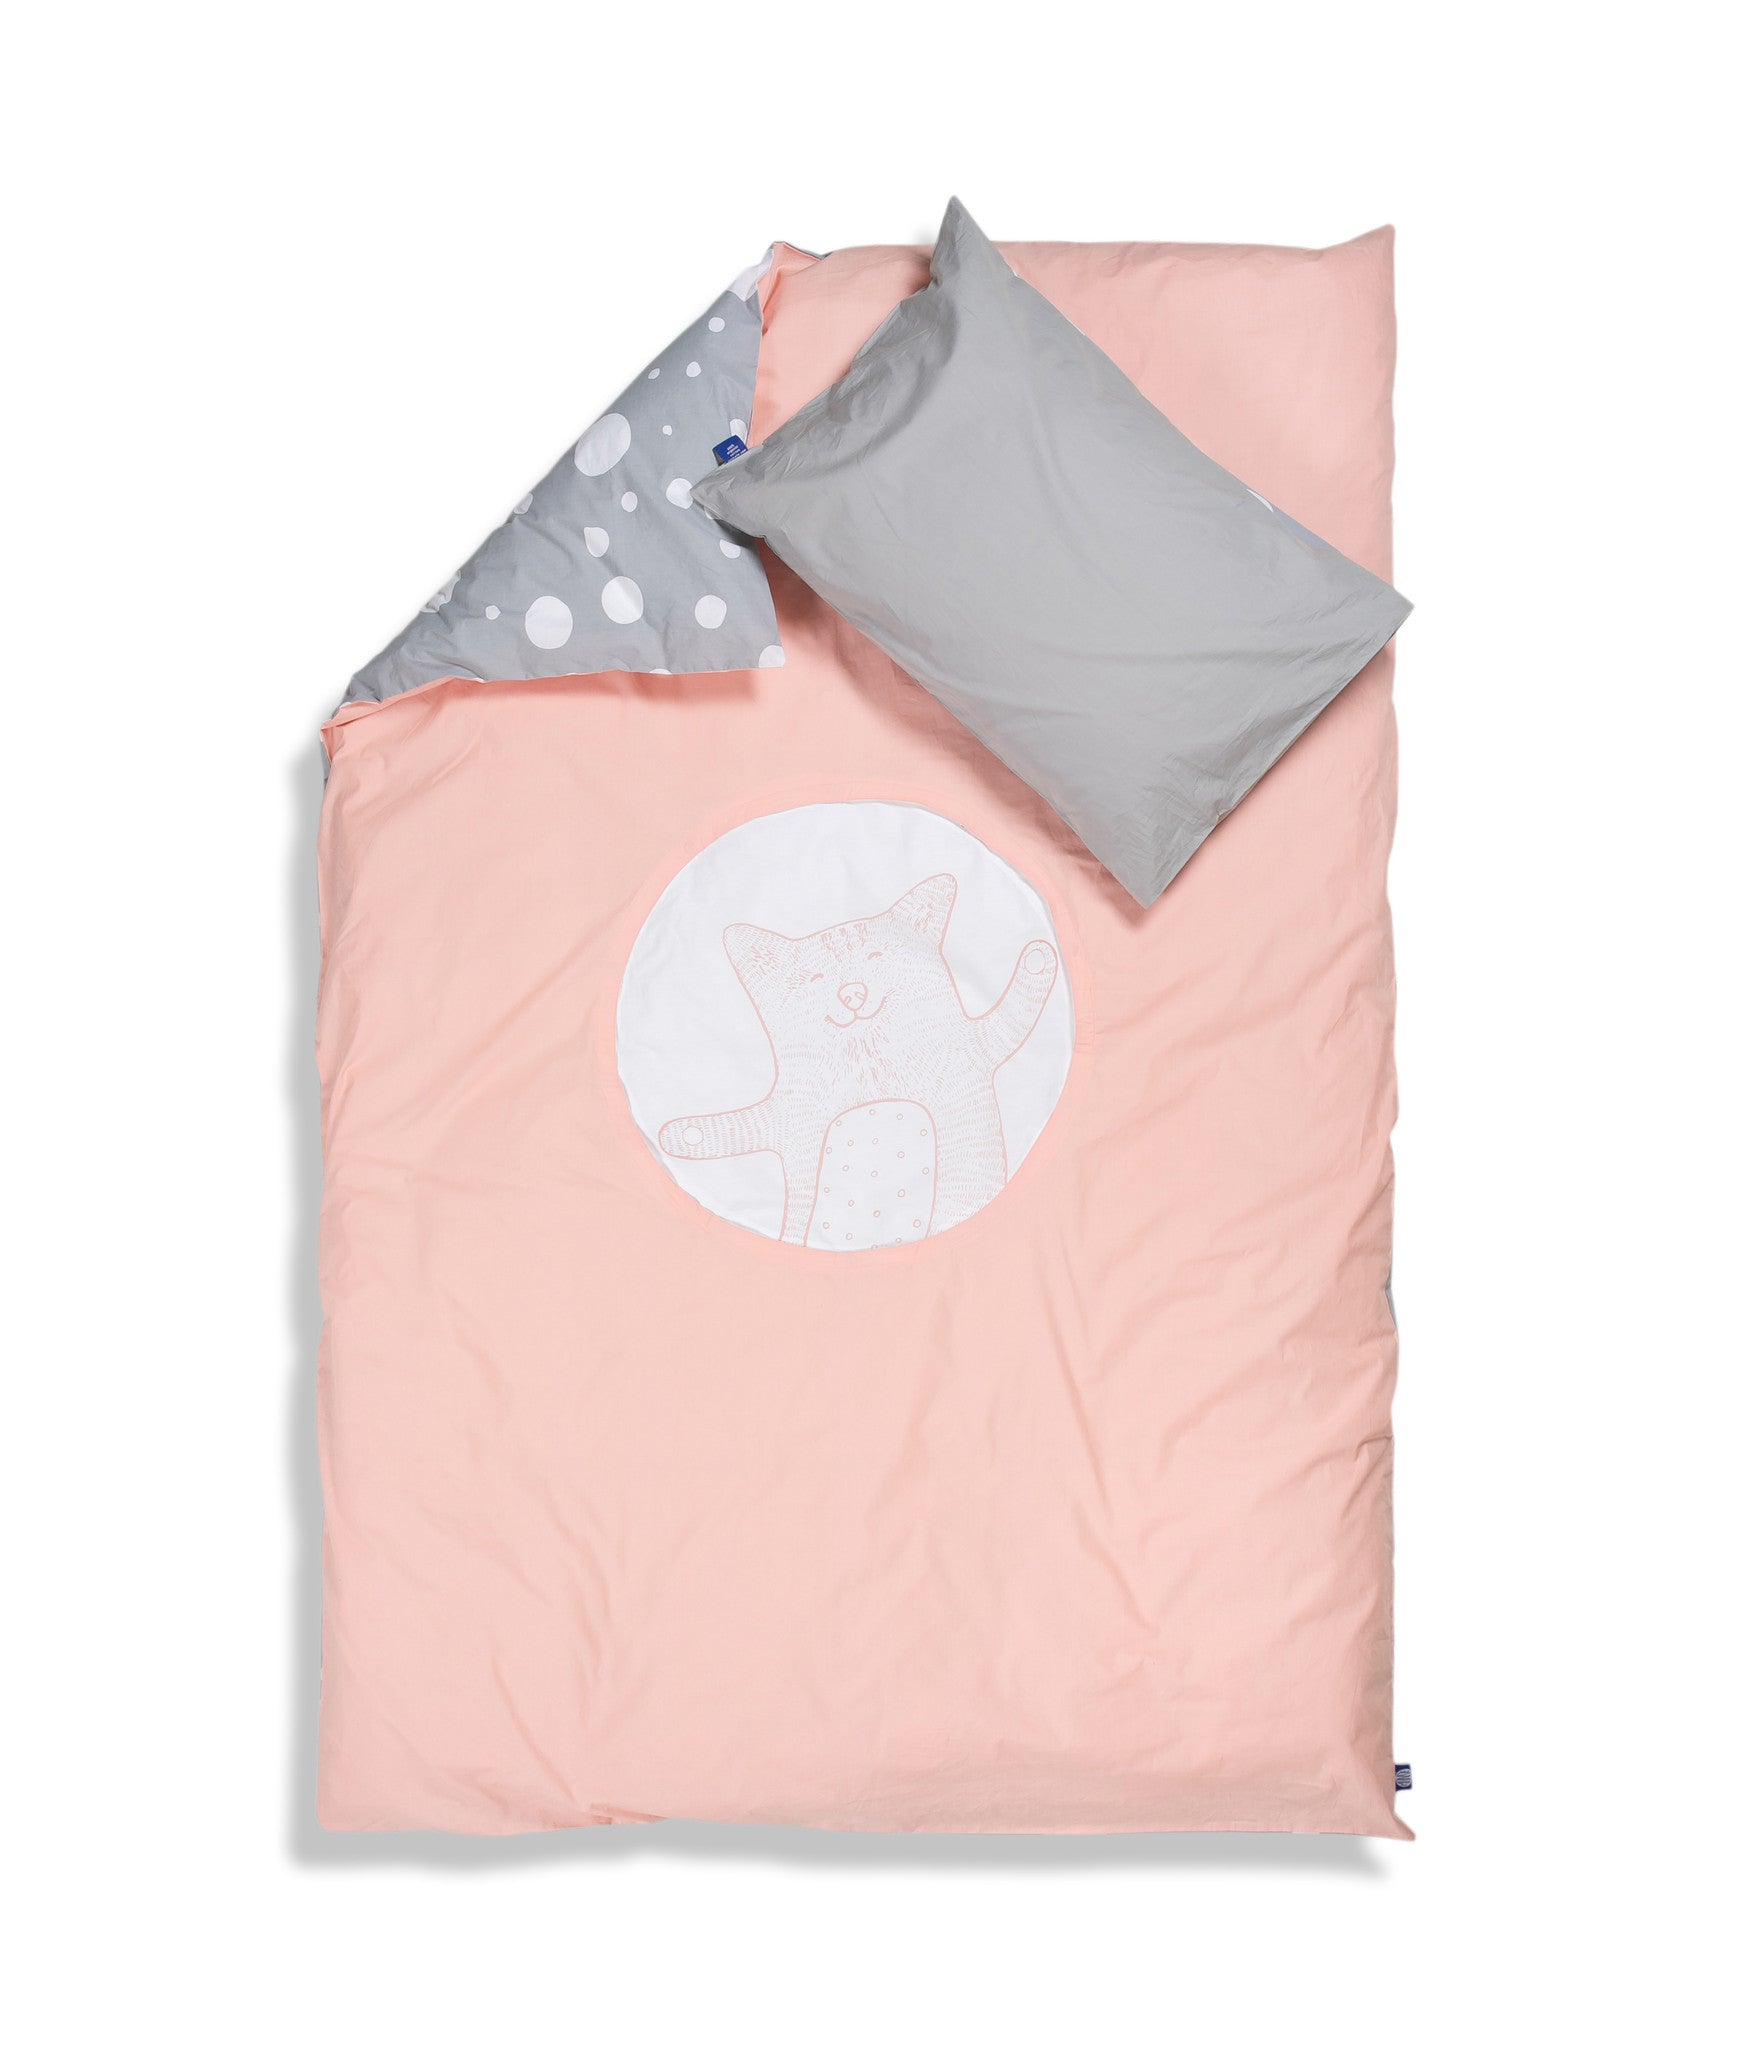 Organic cotton single bed set. Kids bedding. Grey pillow case and pink duvet cover with cat. Dotted pattern bed linen. Customised bedding.